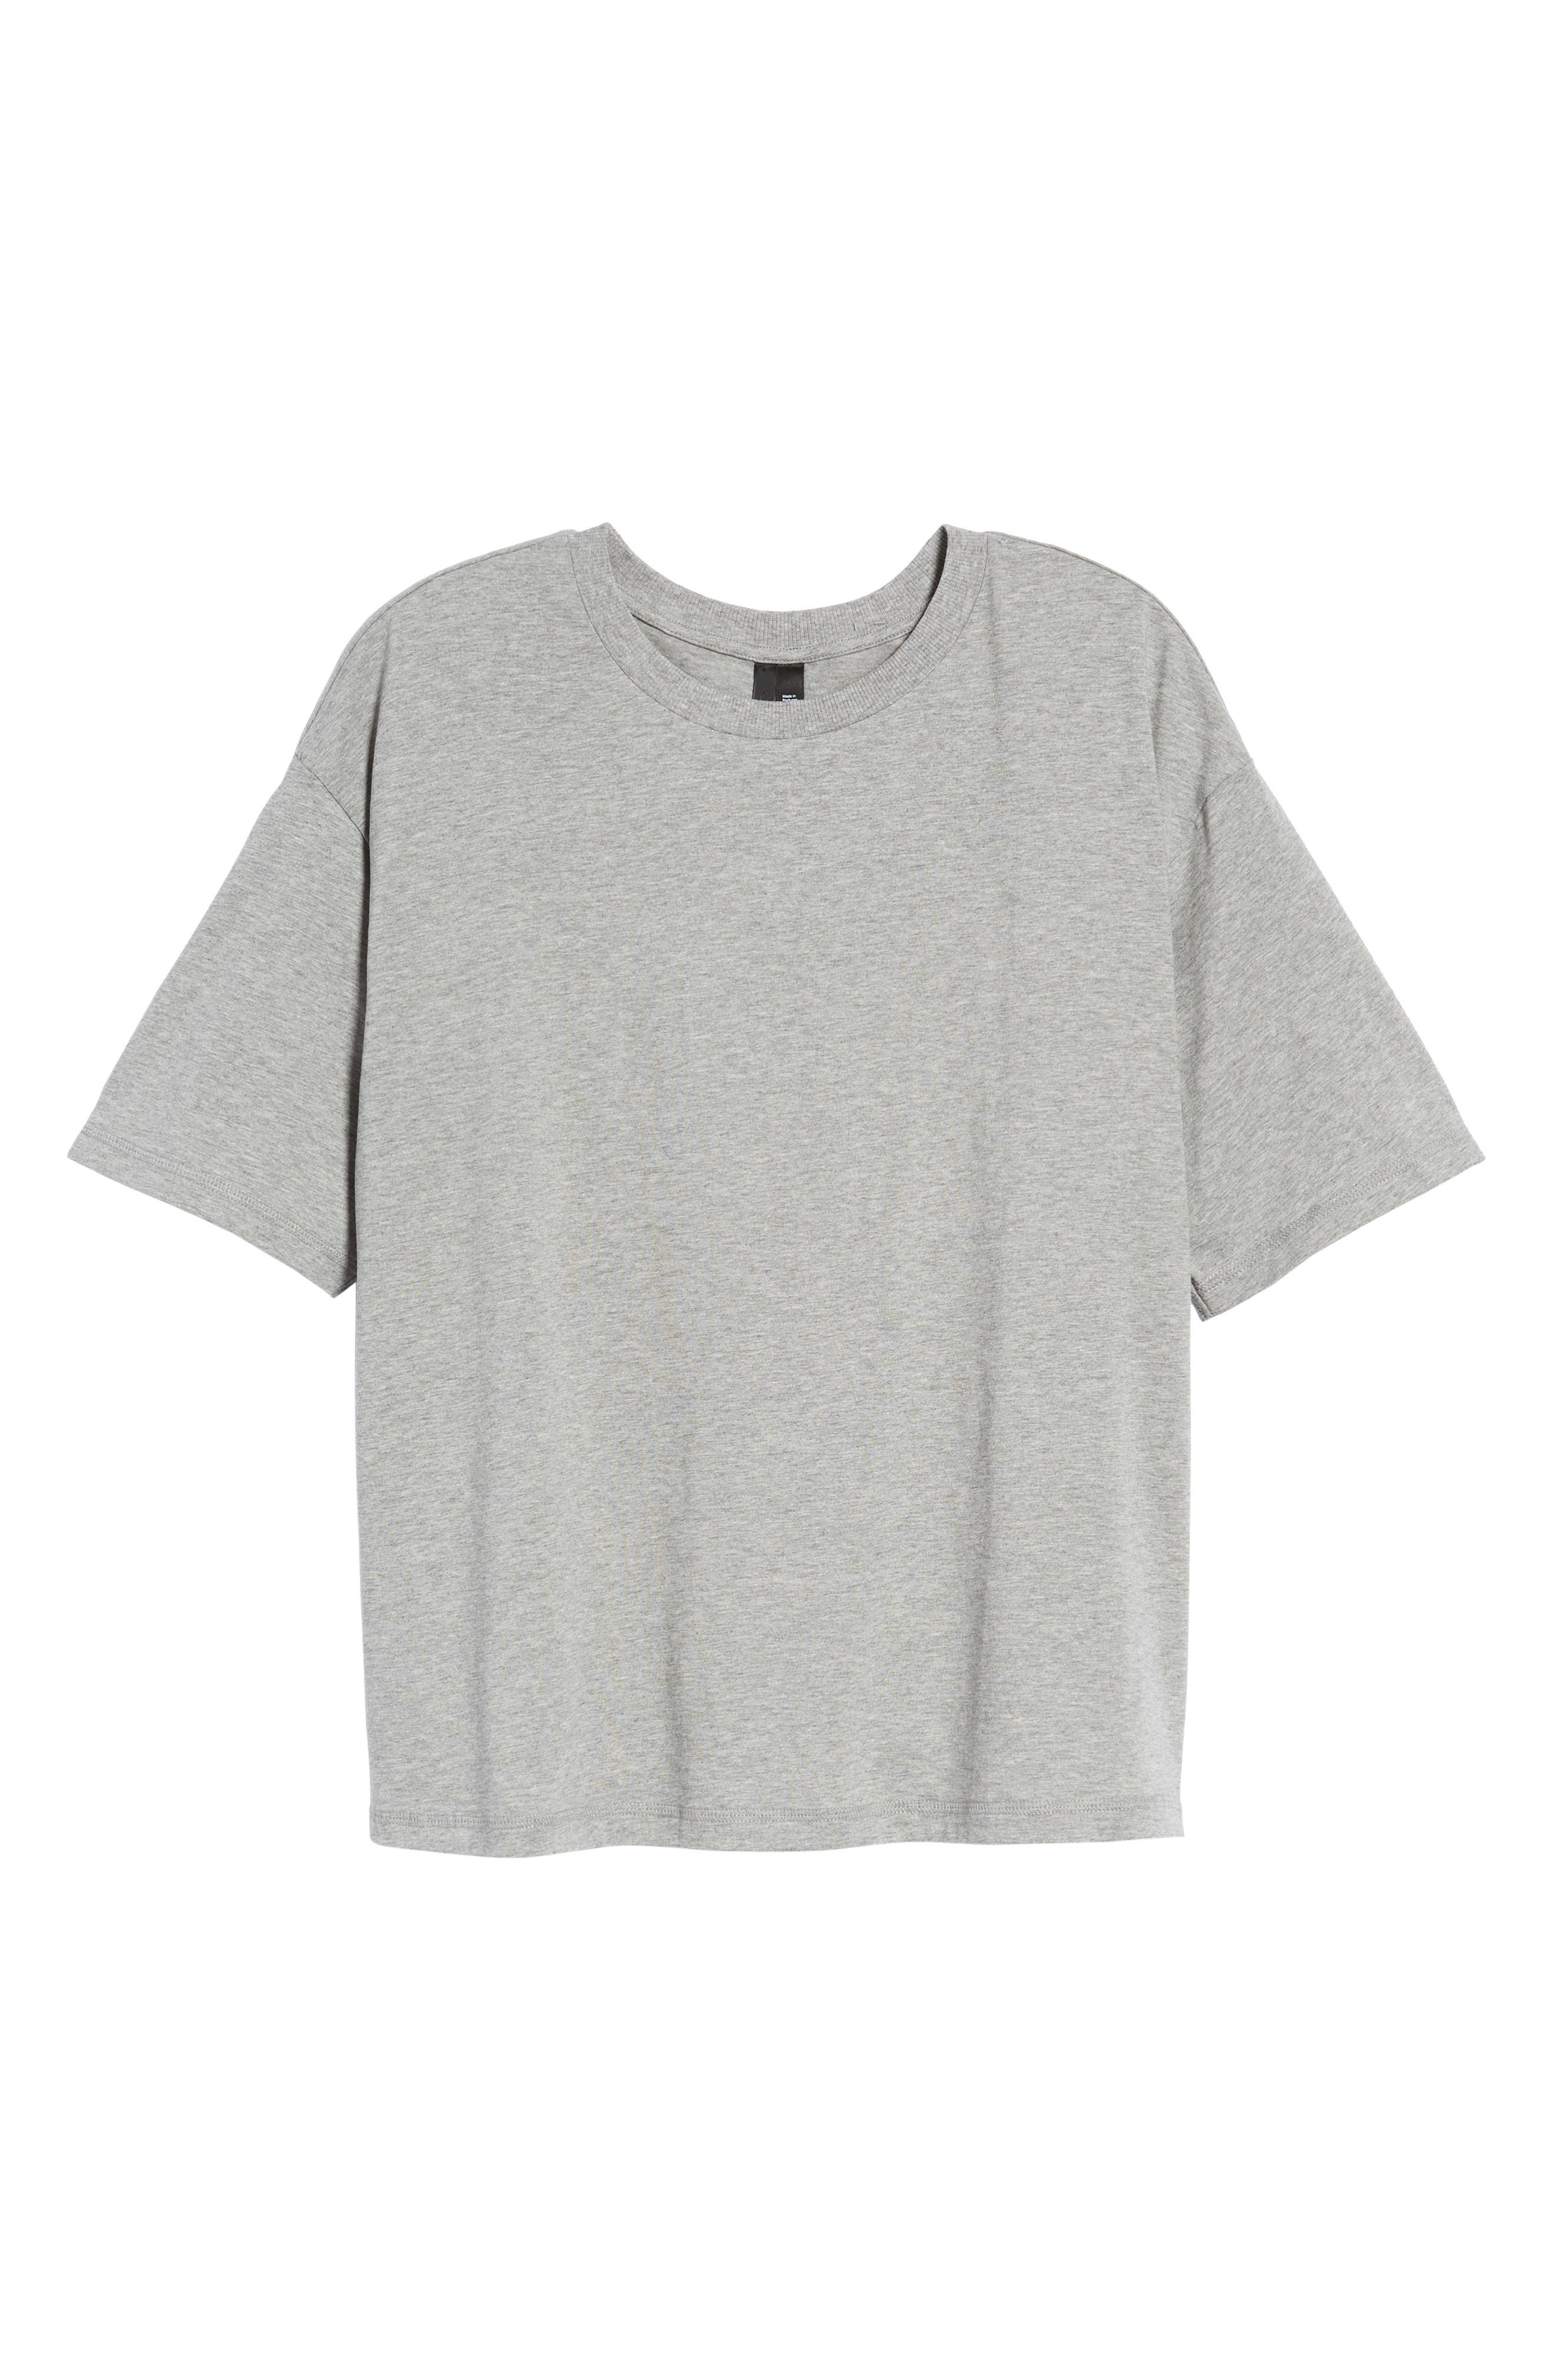 Boxy T-Shirt,                             Alternate thumbnail 7, color,                             020